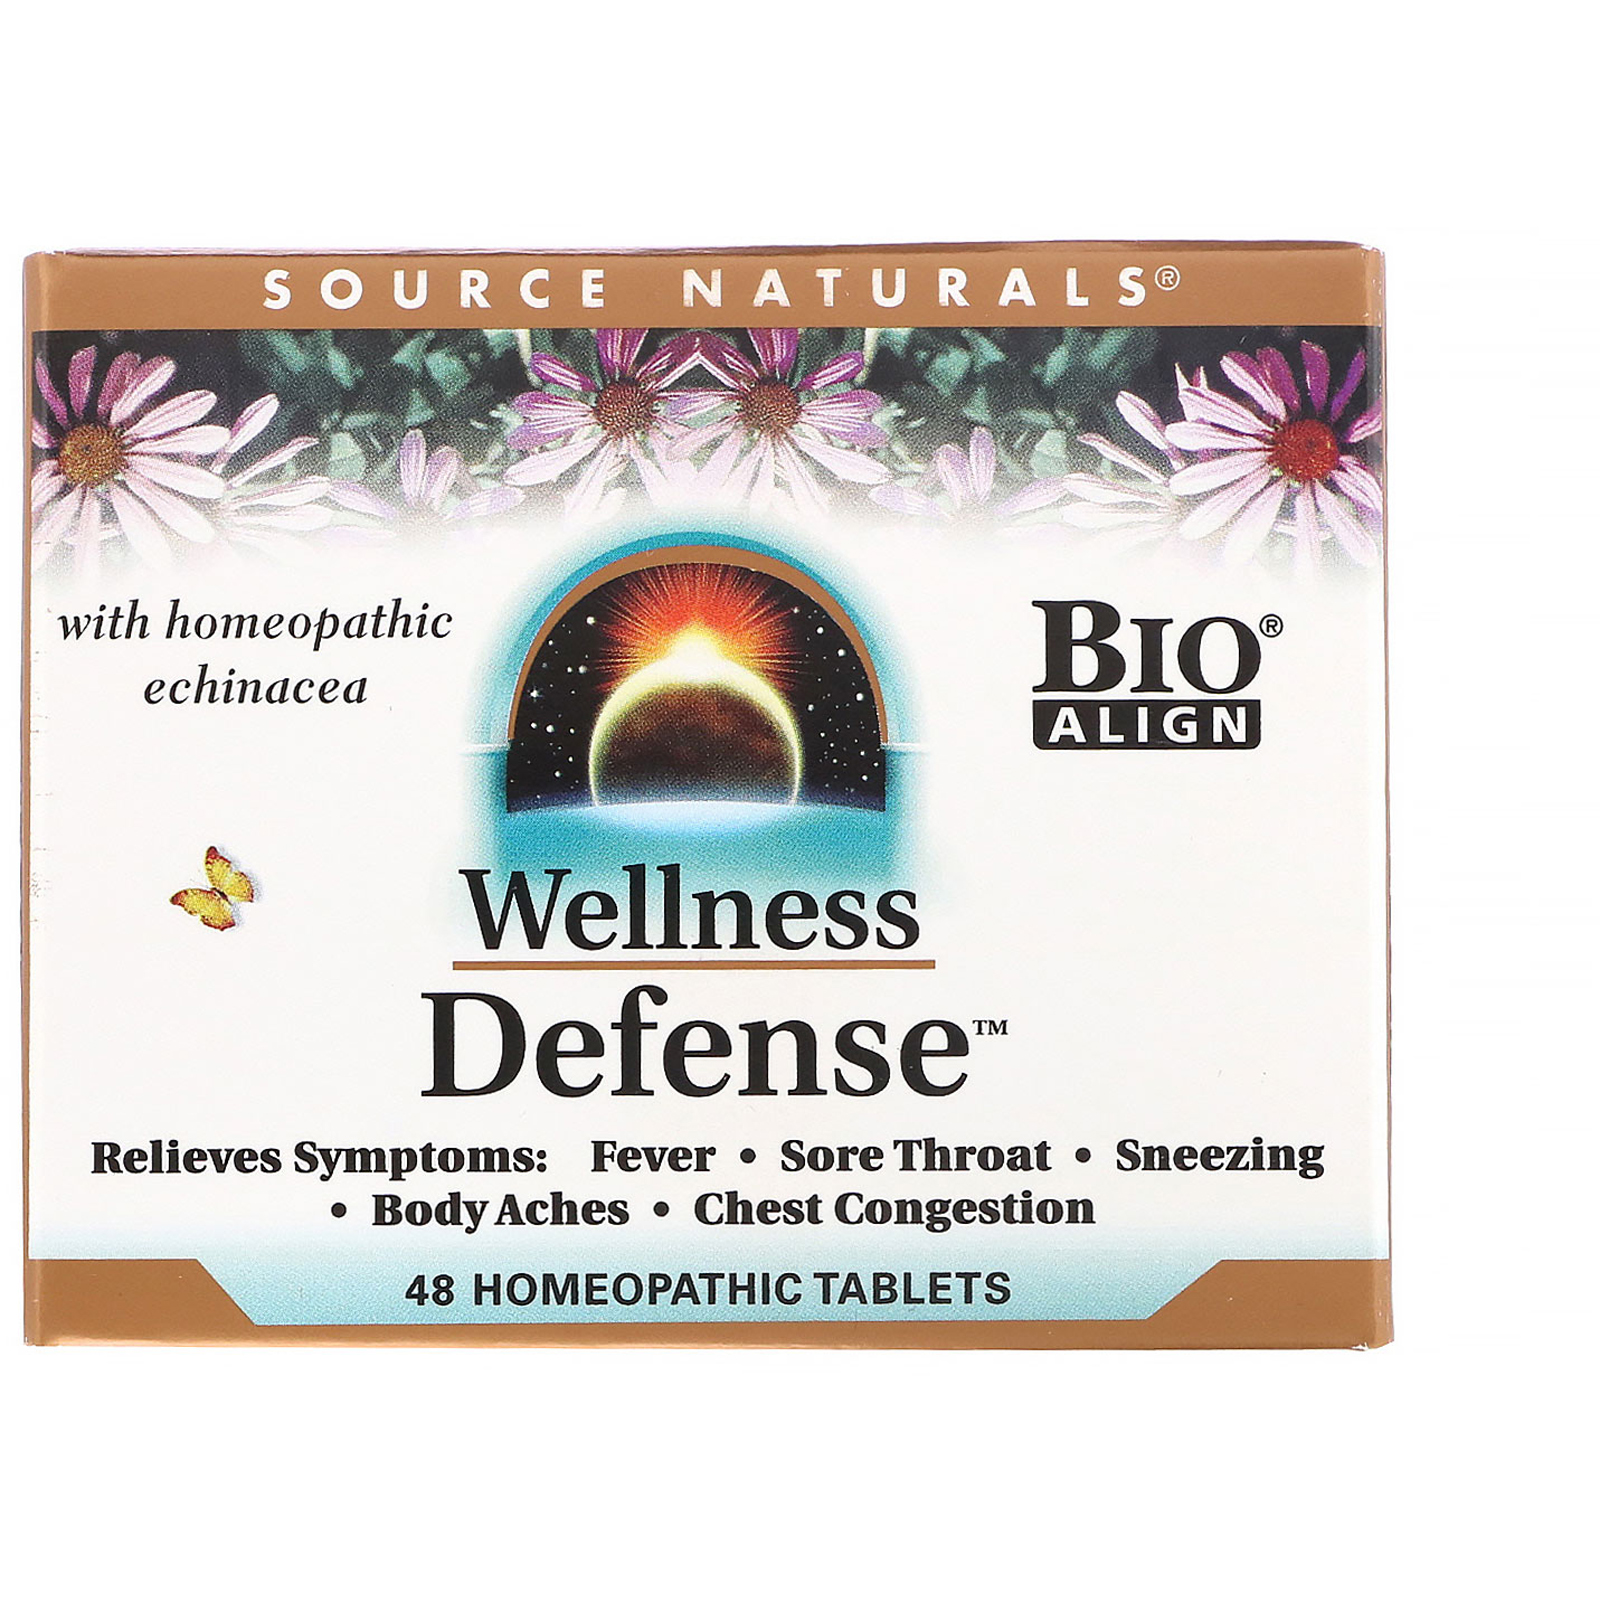 Source Naturals, Wellness Defense, 48 Homeopathic Tablets - iHerb com